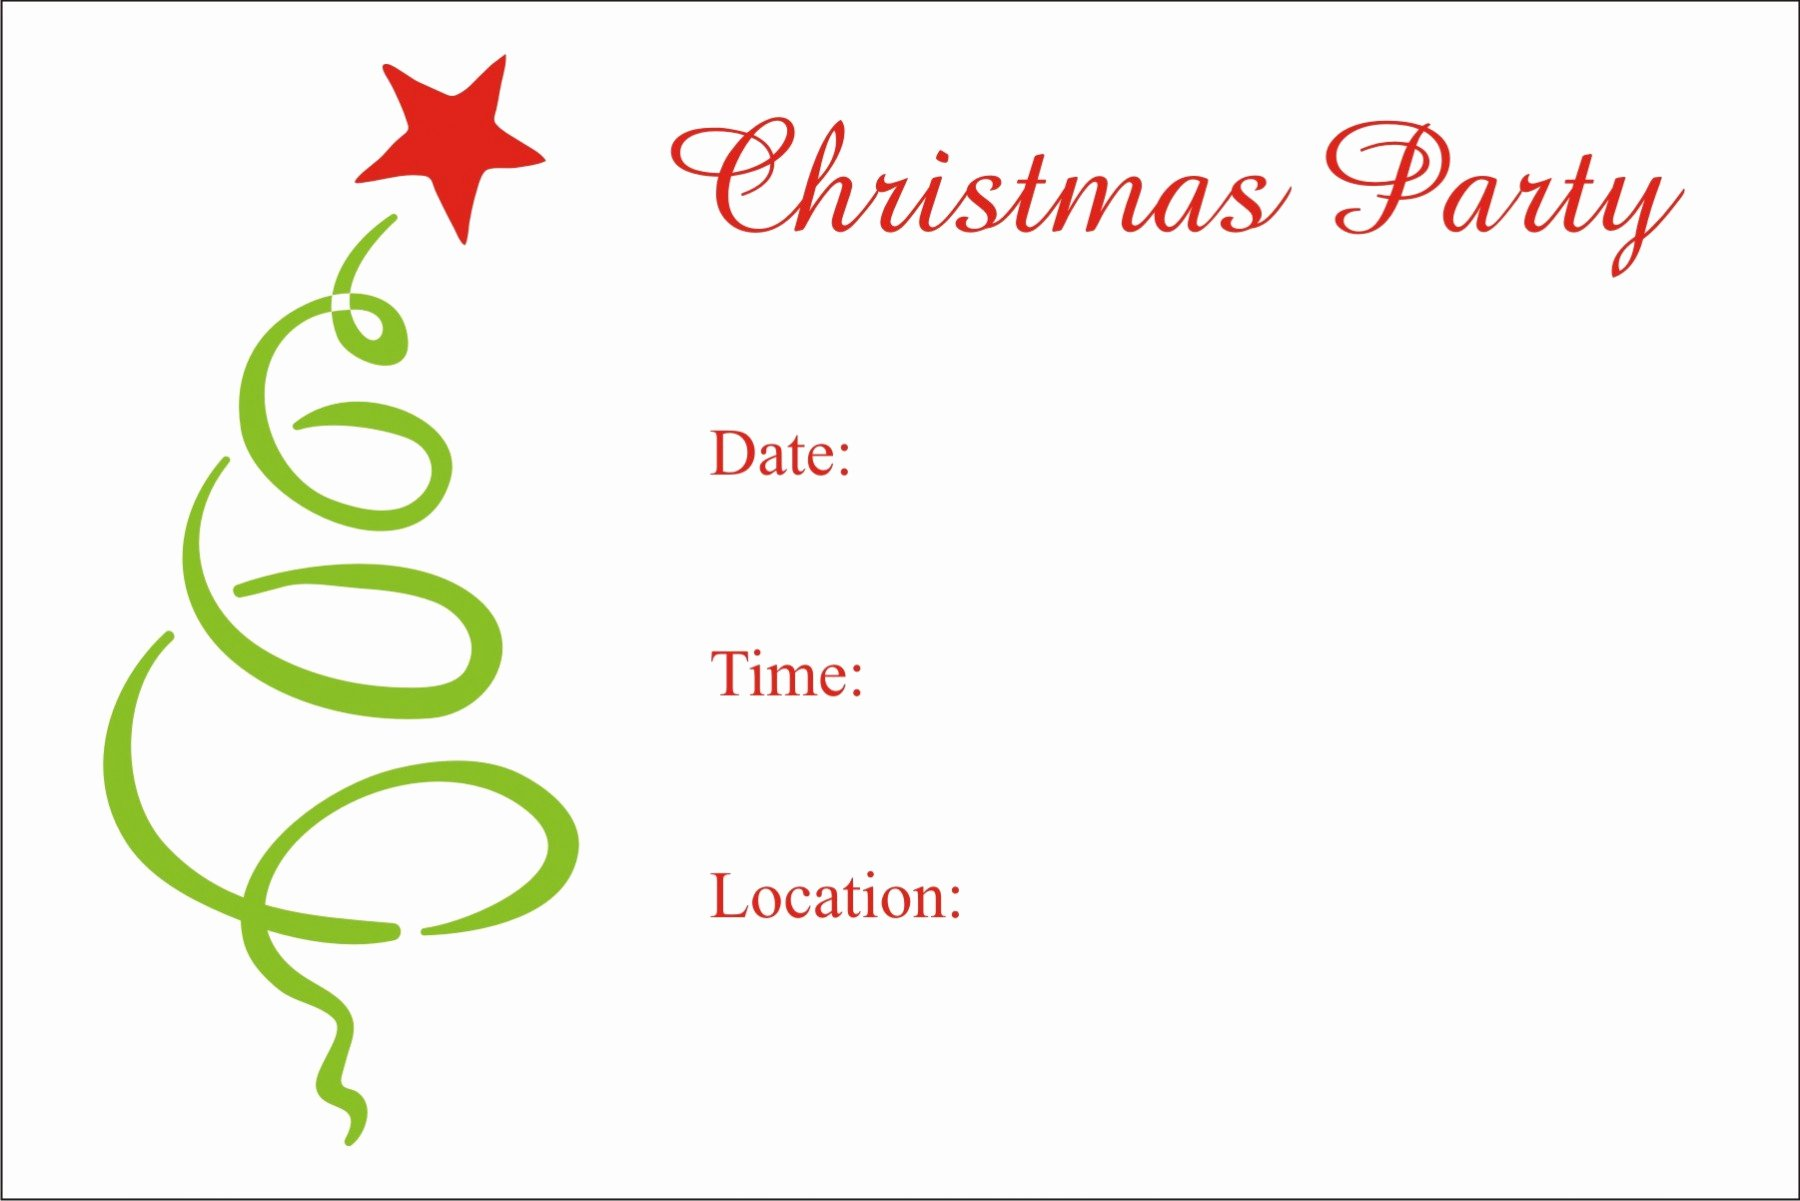 Christmas Party Invite Template Best Of Christmas Party Free Printable Holiday Invitation